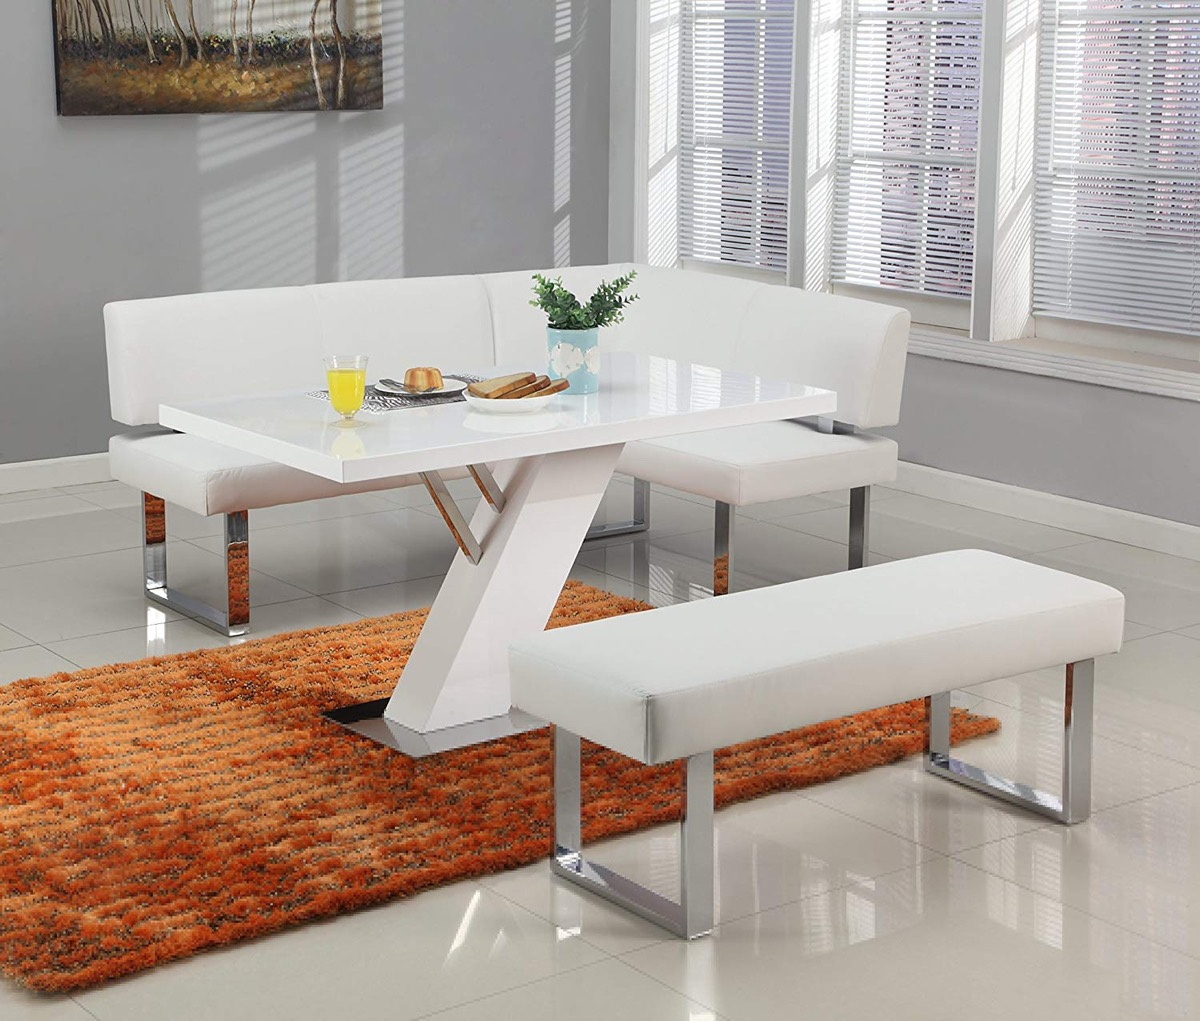 Modern-White-Corner-Dining-Bench-With-Chrome-Legs-Lather-Upholstered-Cushion